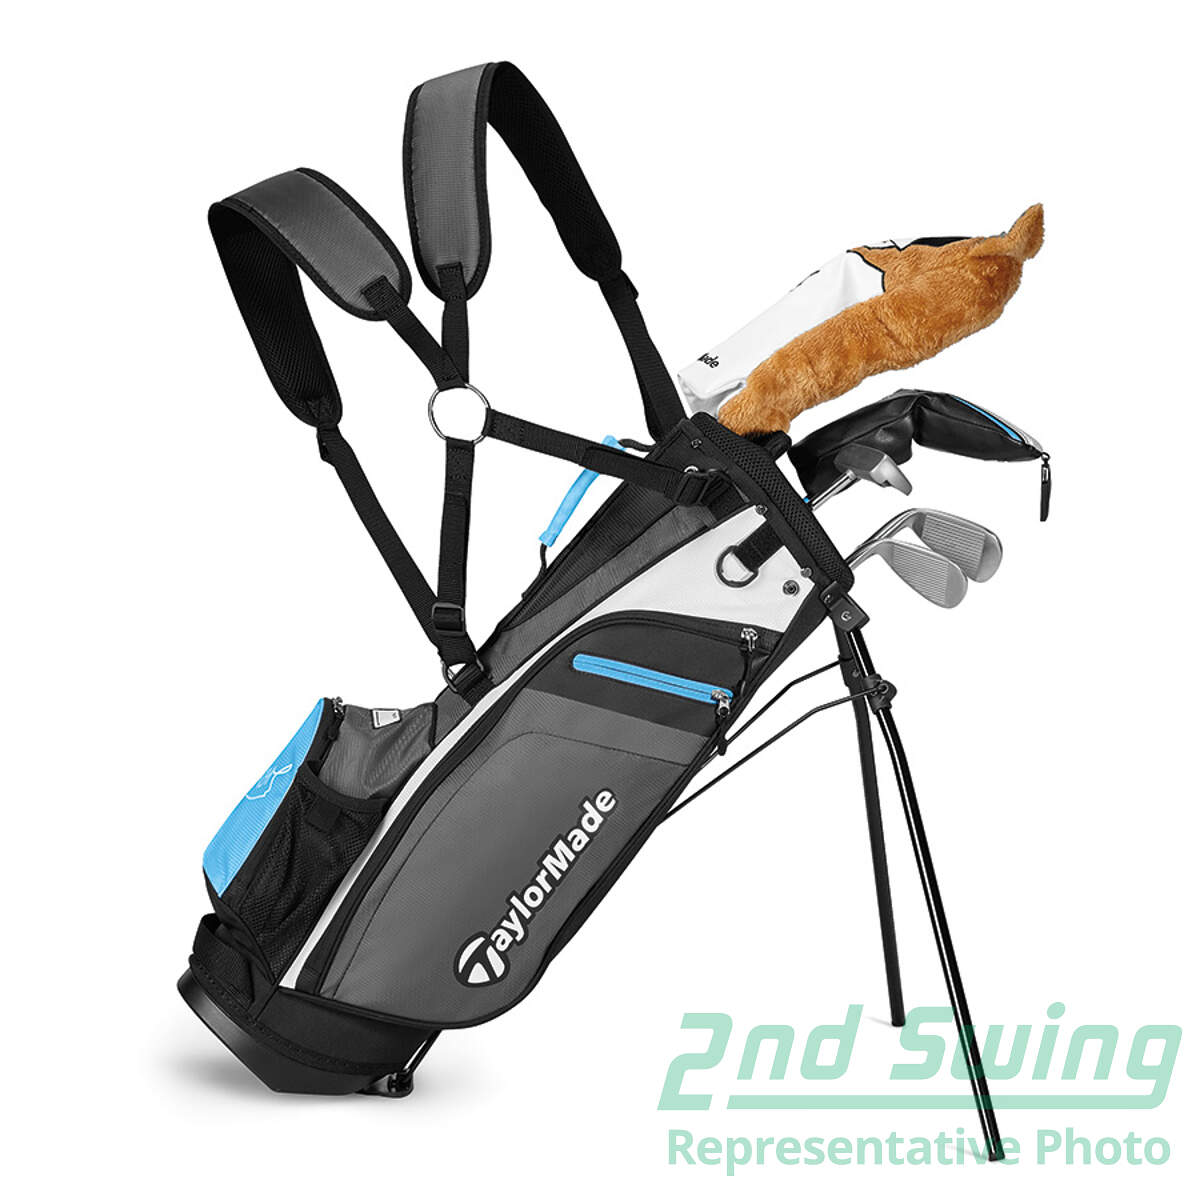 Taylormade Rory Kids 6 Piece Complete Golf Club Set Junior Left Handed New Golf Club 2nd Swing Golf